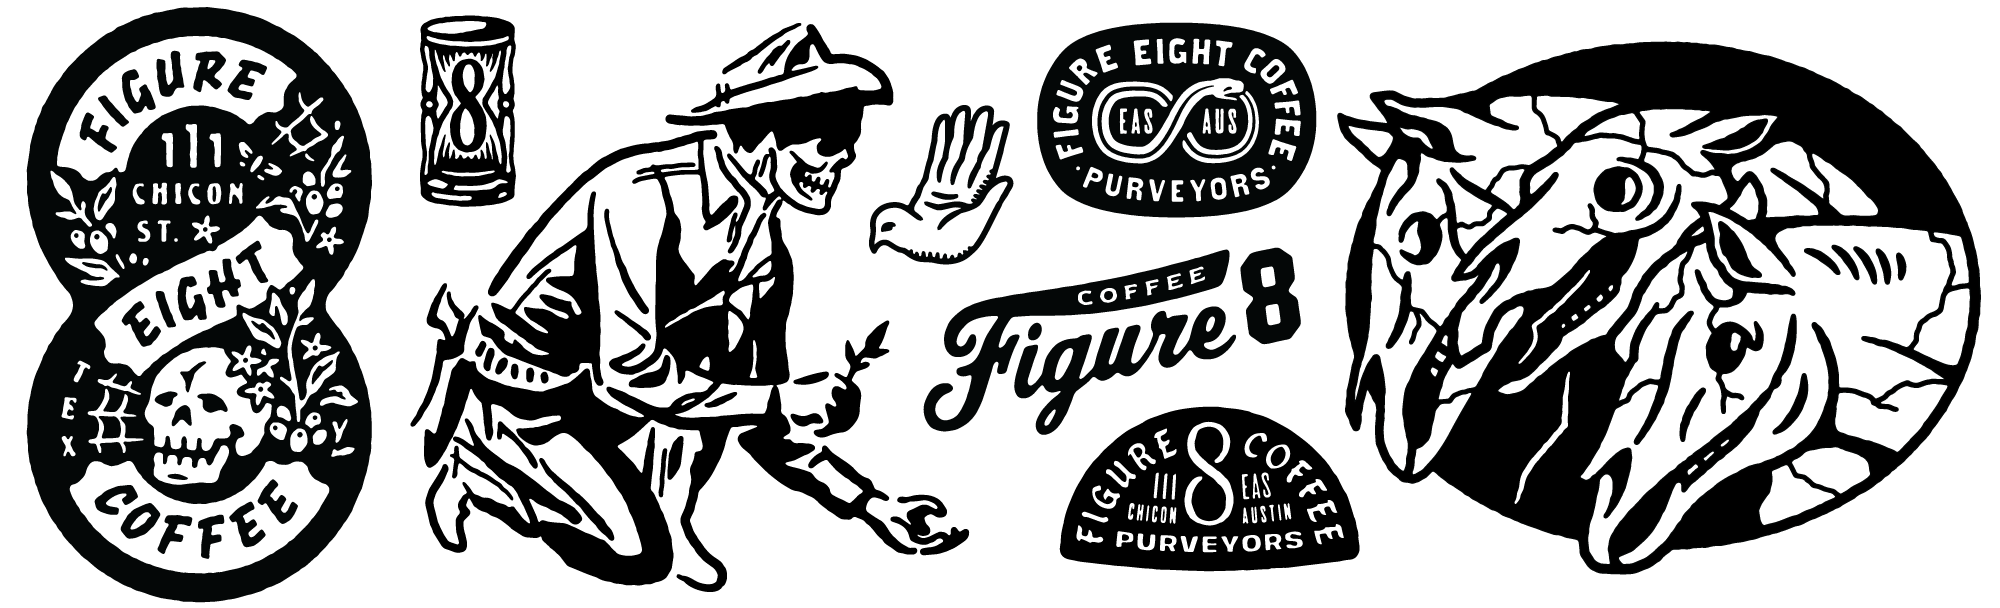 Various designs for Figure 8 Coffee Roasters in Texas